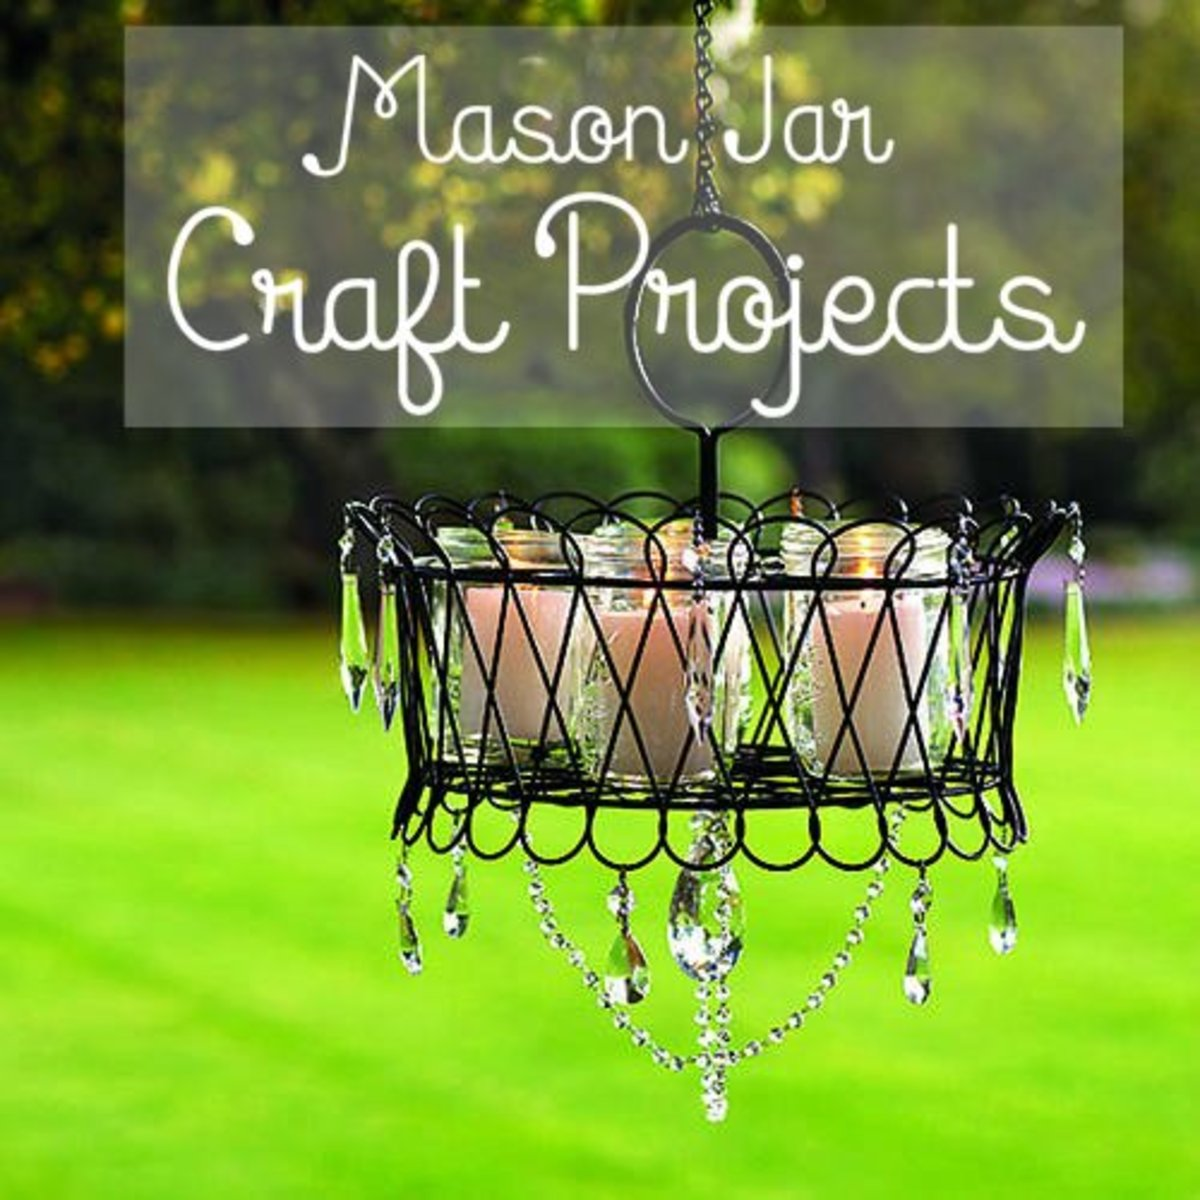 88 Outstanding Craft Projects Using Glass Jars